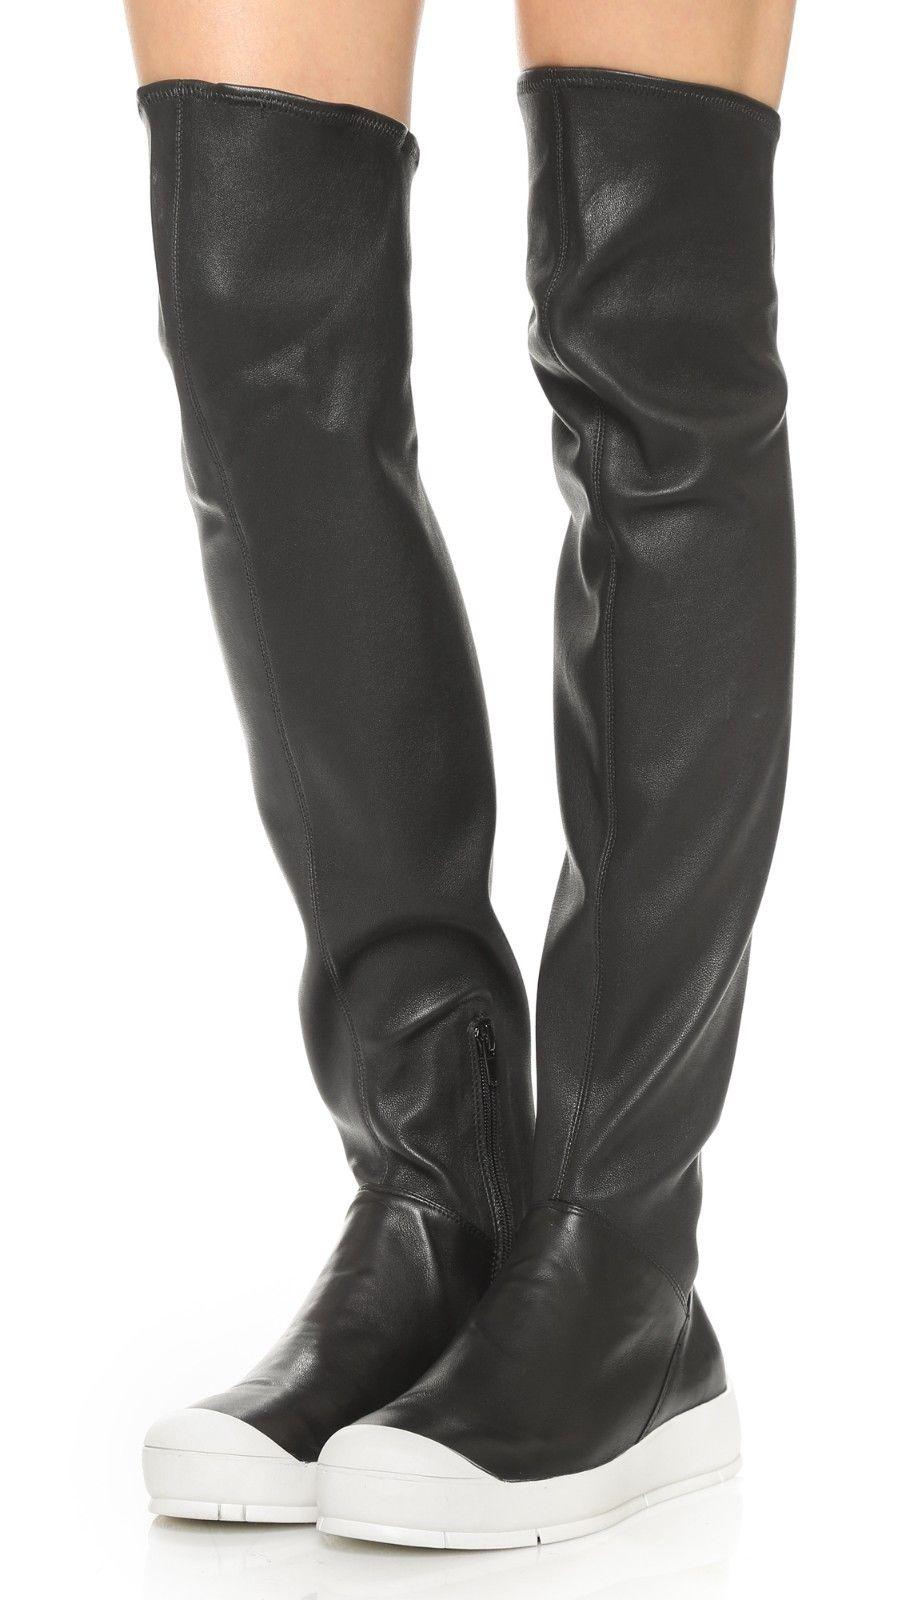 9611f0fea25 ATELJE 71 Mack Sneaker Over Knee Stretch Leather Boots Thigh High Booties  7.5